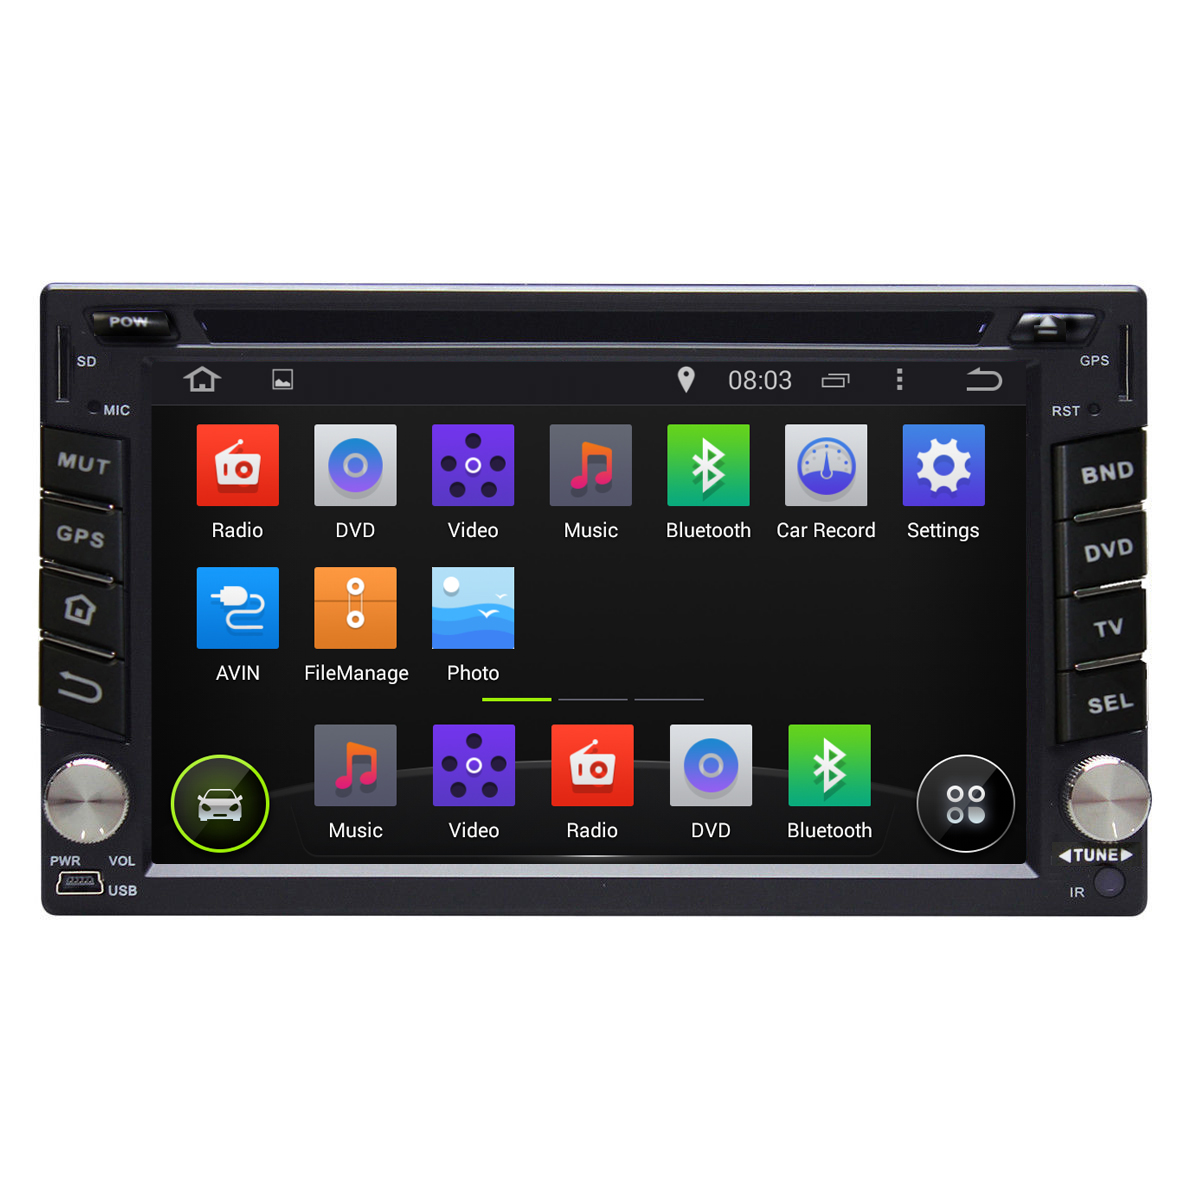 Inch Android Touchscreen Radio For 2000 2011 Hyundai Kia Nissan Gps Navigation System Bluetooth Music Backup Camera S30701 together with 221900489576 further Nissan Altima 2007 2011 Factory Stereo To Aftermarket Radio Harness furthermore 9830 additionally Versa Stuff. on touch screen radio 08 nissan versa